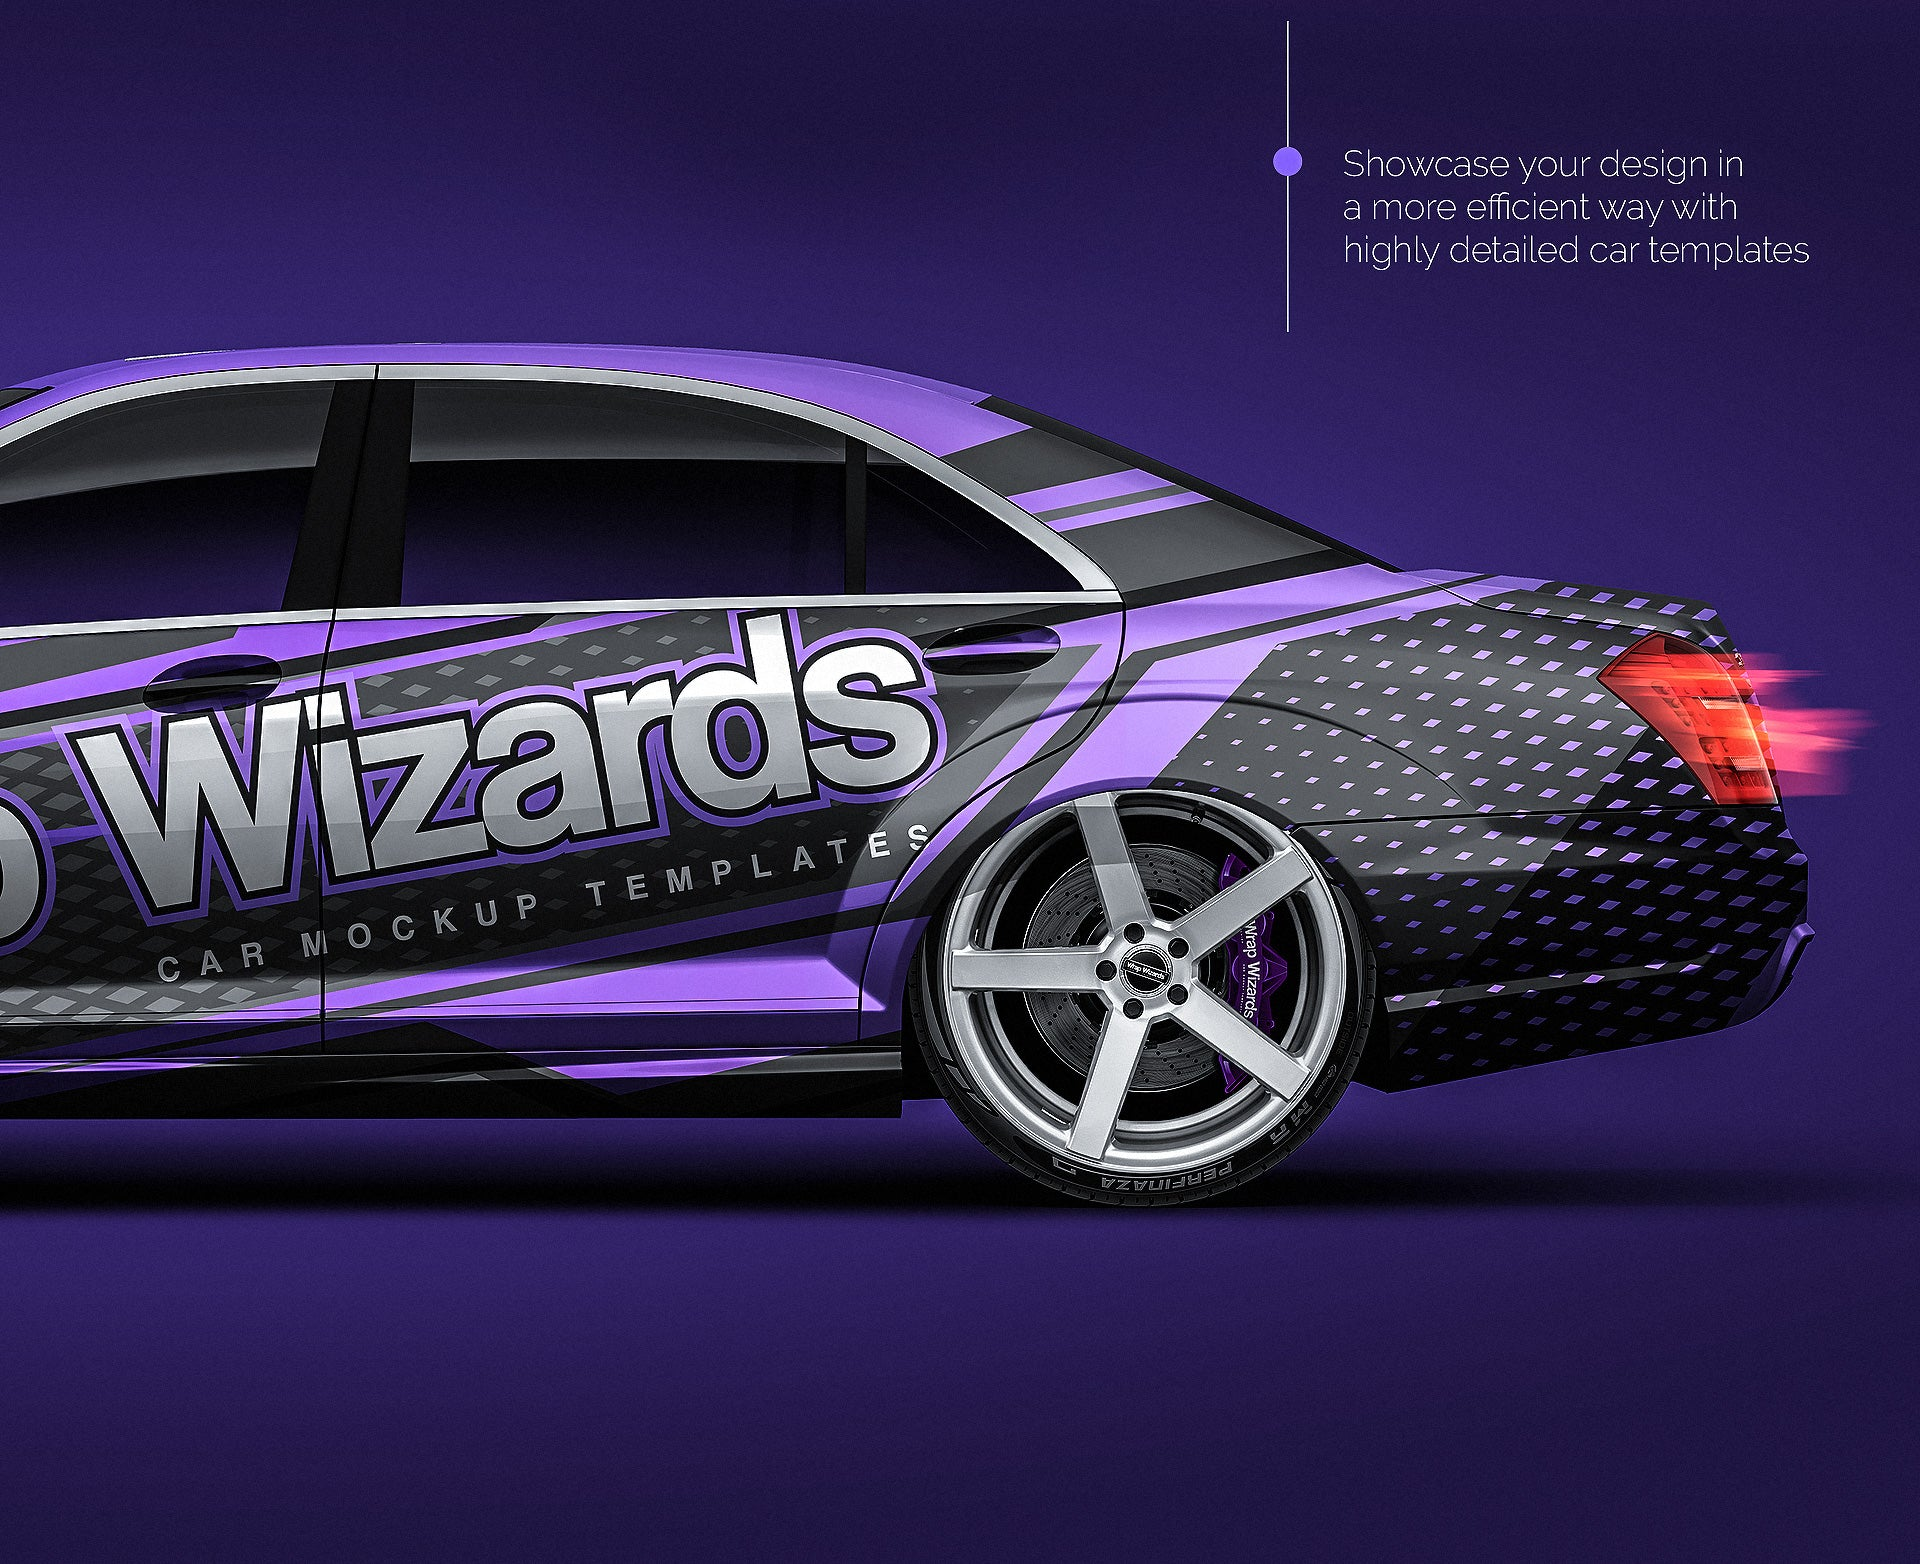 Mercedes Benz S Class AMG 2010 all sides Car Mockup Template.psd